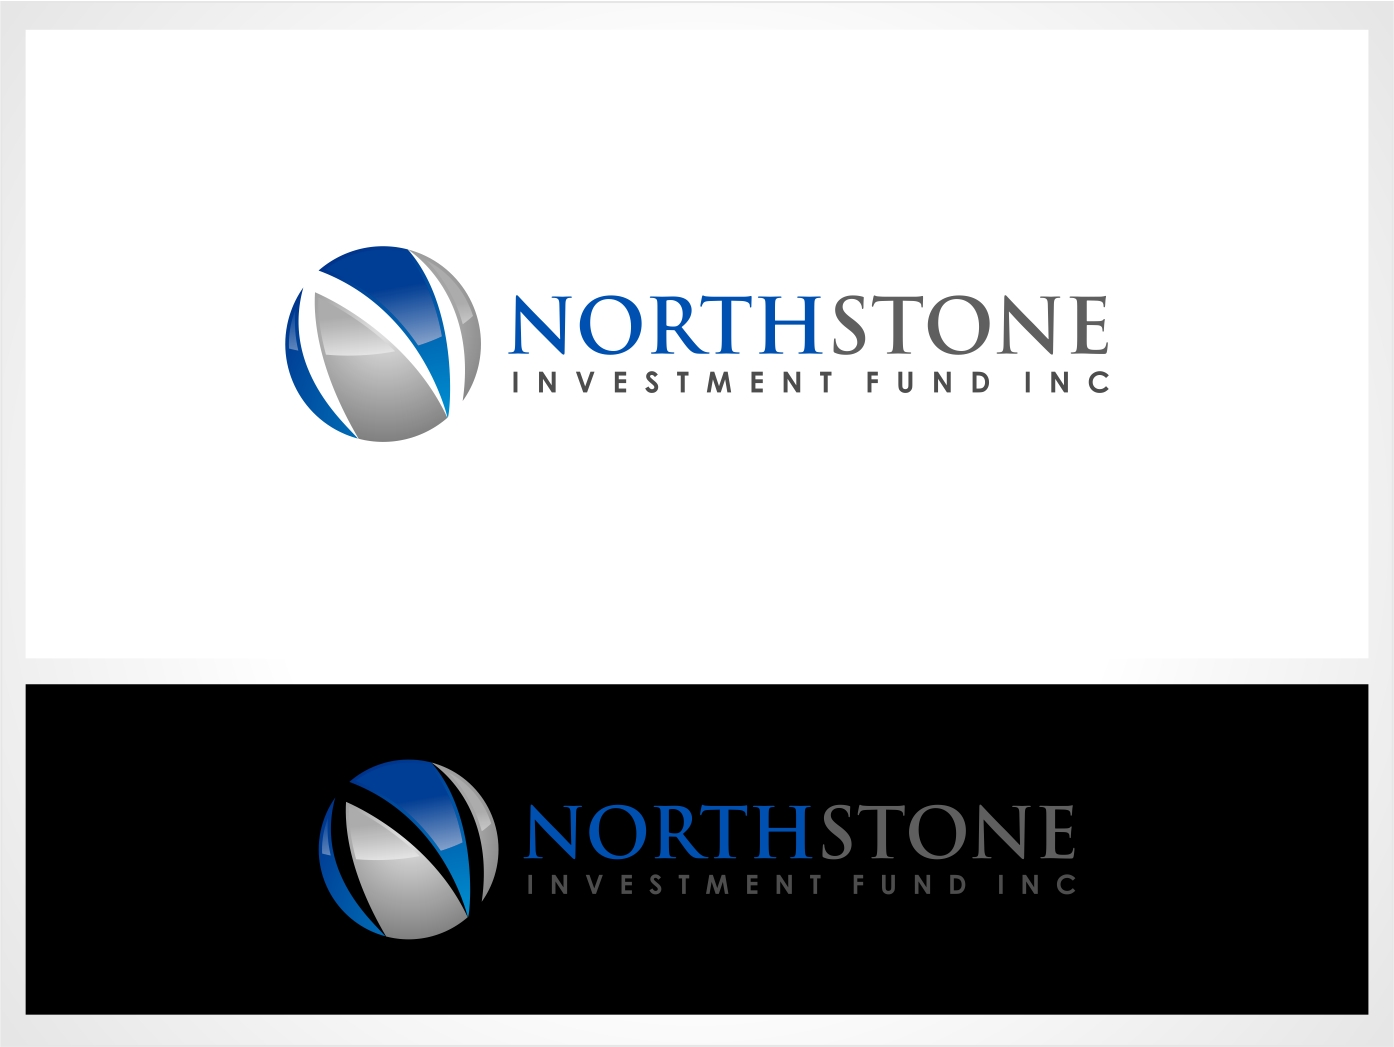 Logo Design by haidu - Entry No. 217 in the Logo Design Contest Unique Logo Design Wanted for NorthStone Investment Fund Inc.